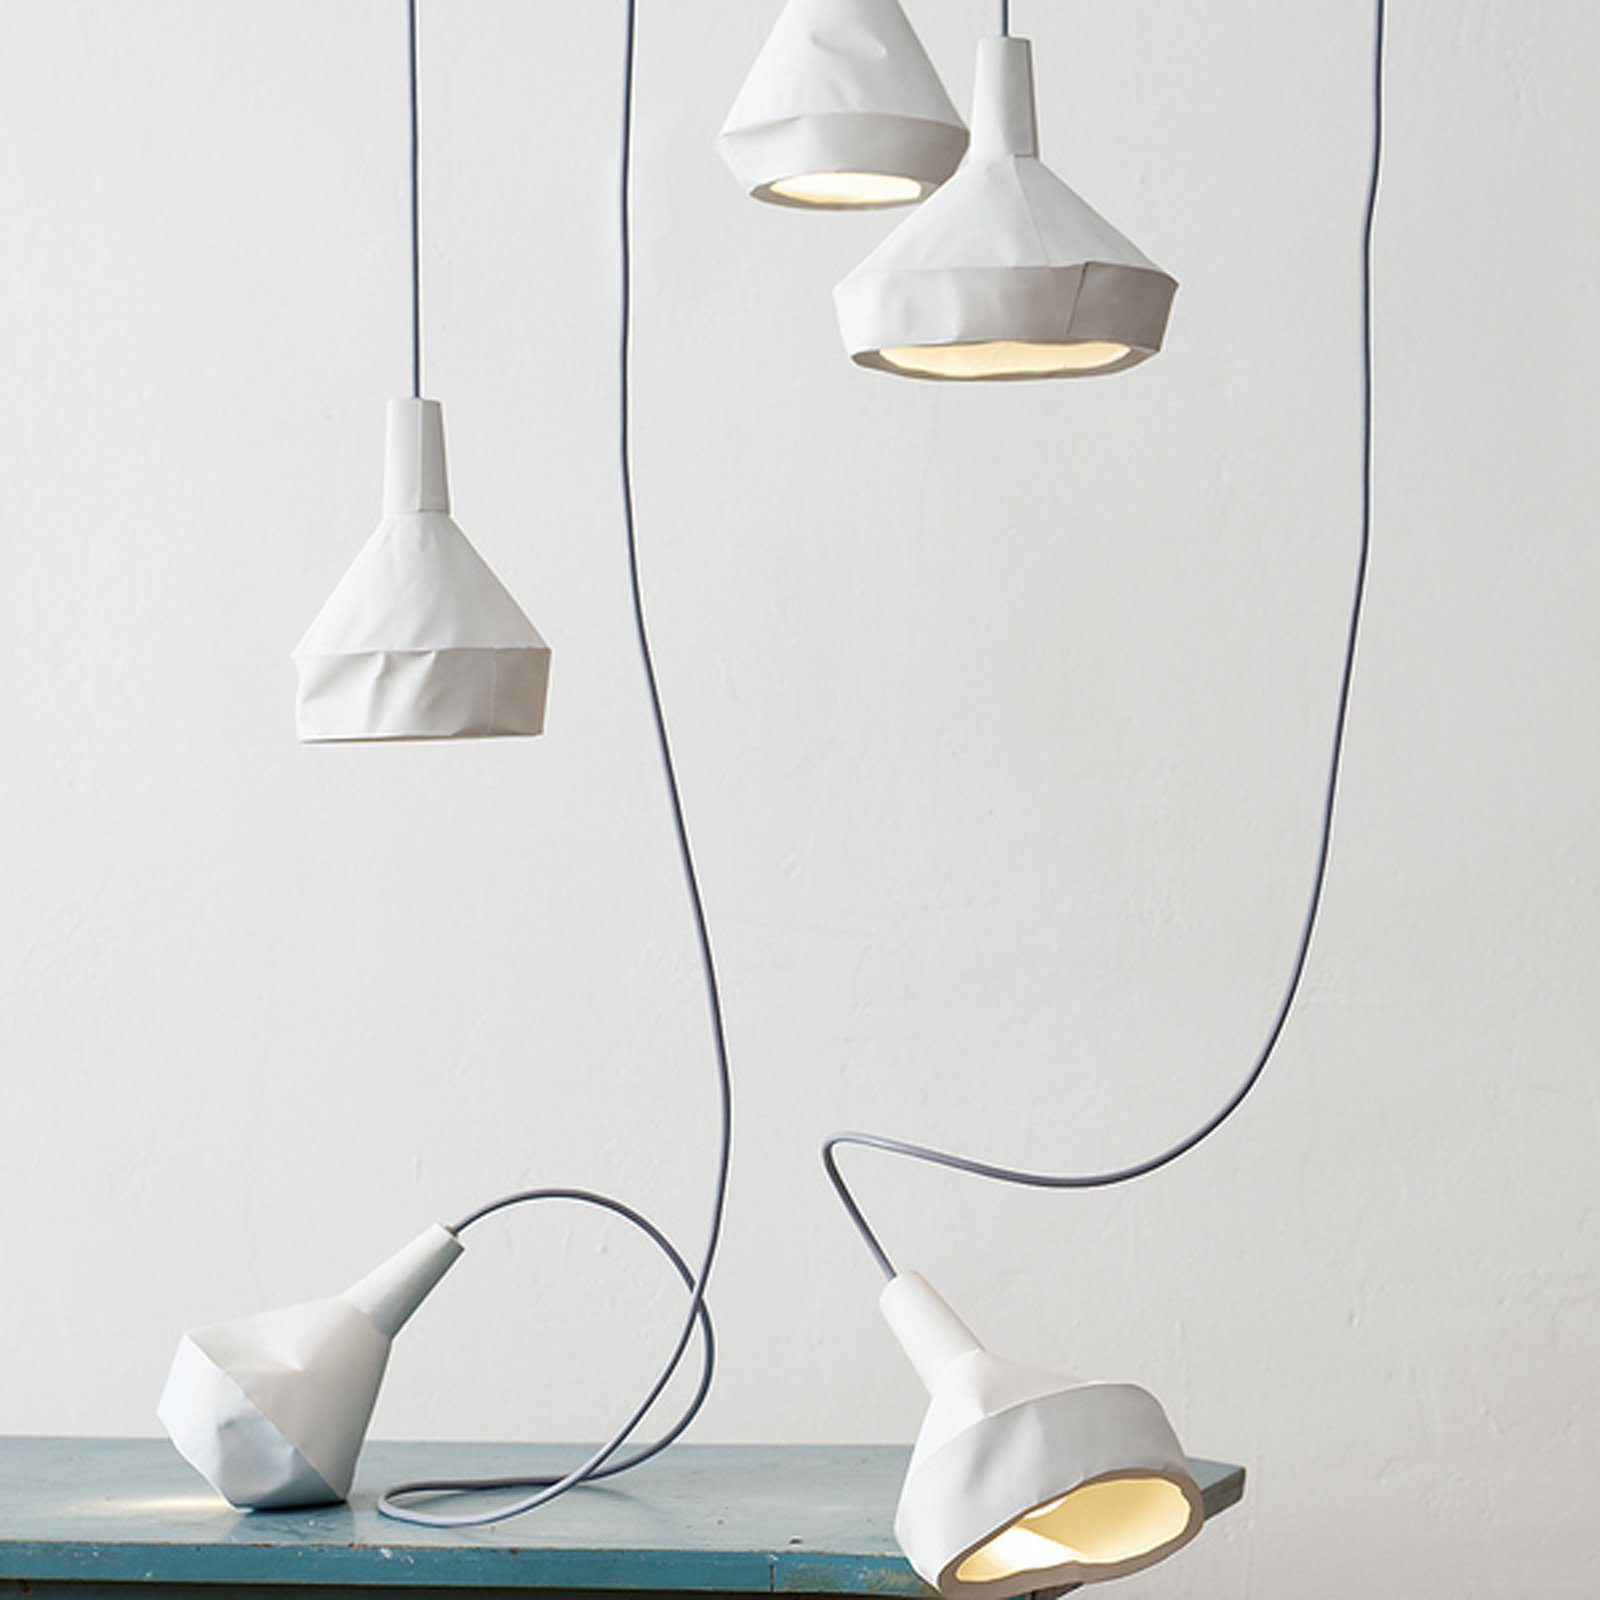 #german #lighting #slewed #concrete #paper #oragnic #aust #amelung  Designed by Miriam Aust and Sebastian Amelung